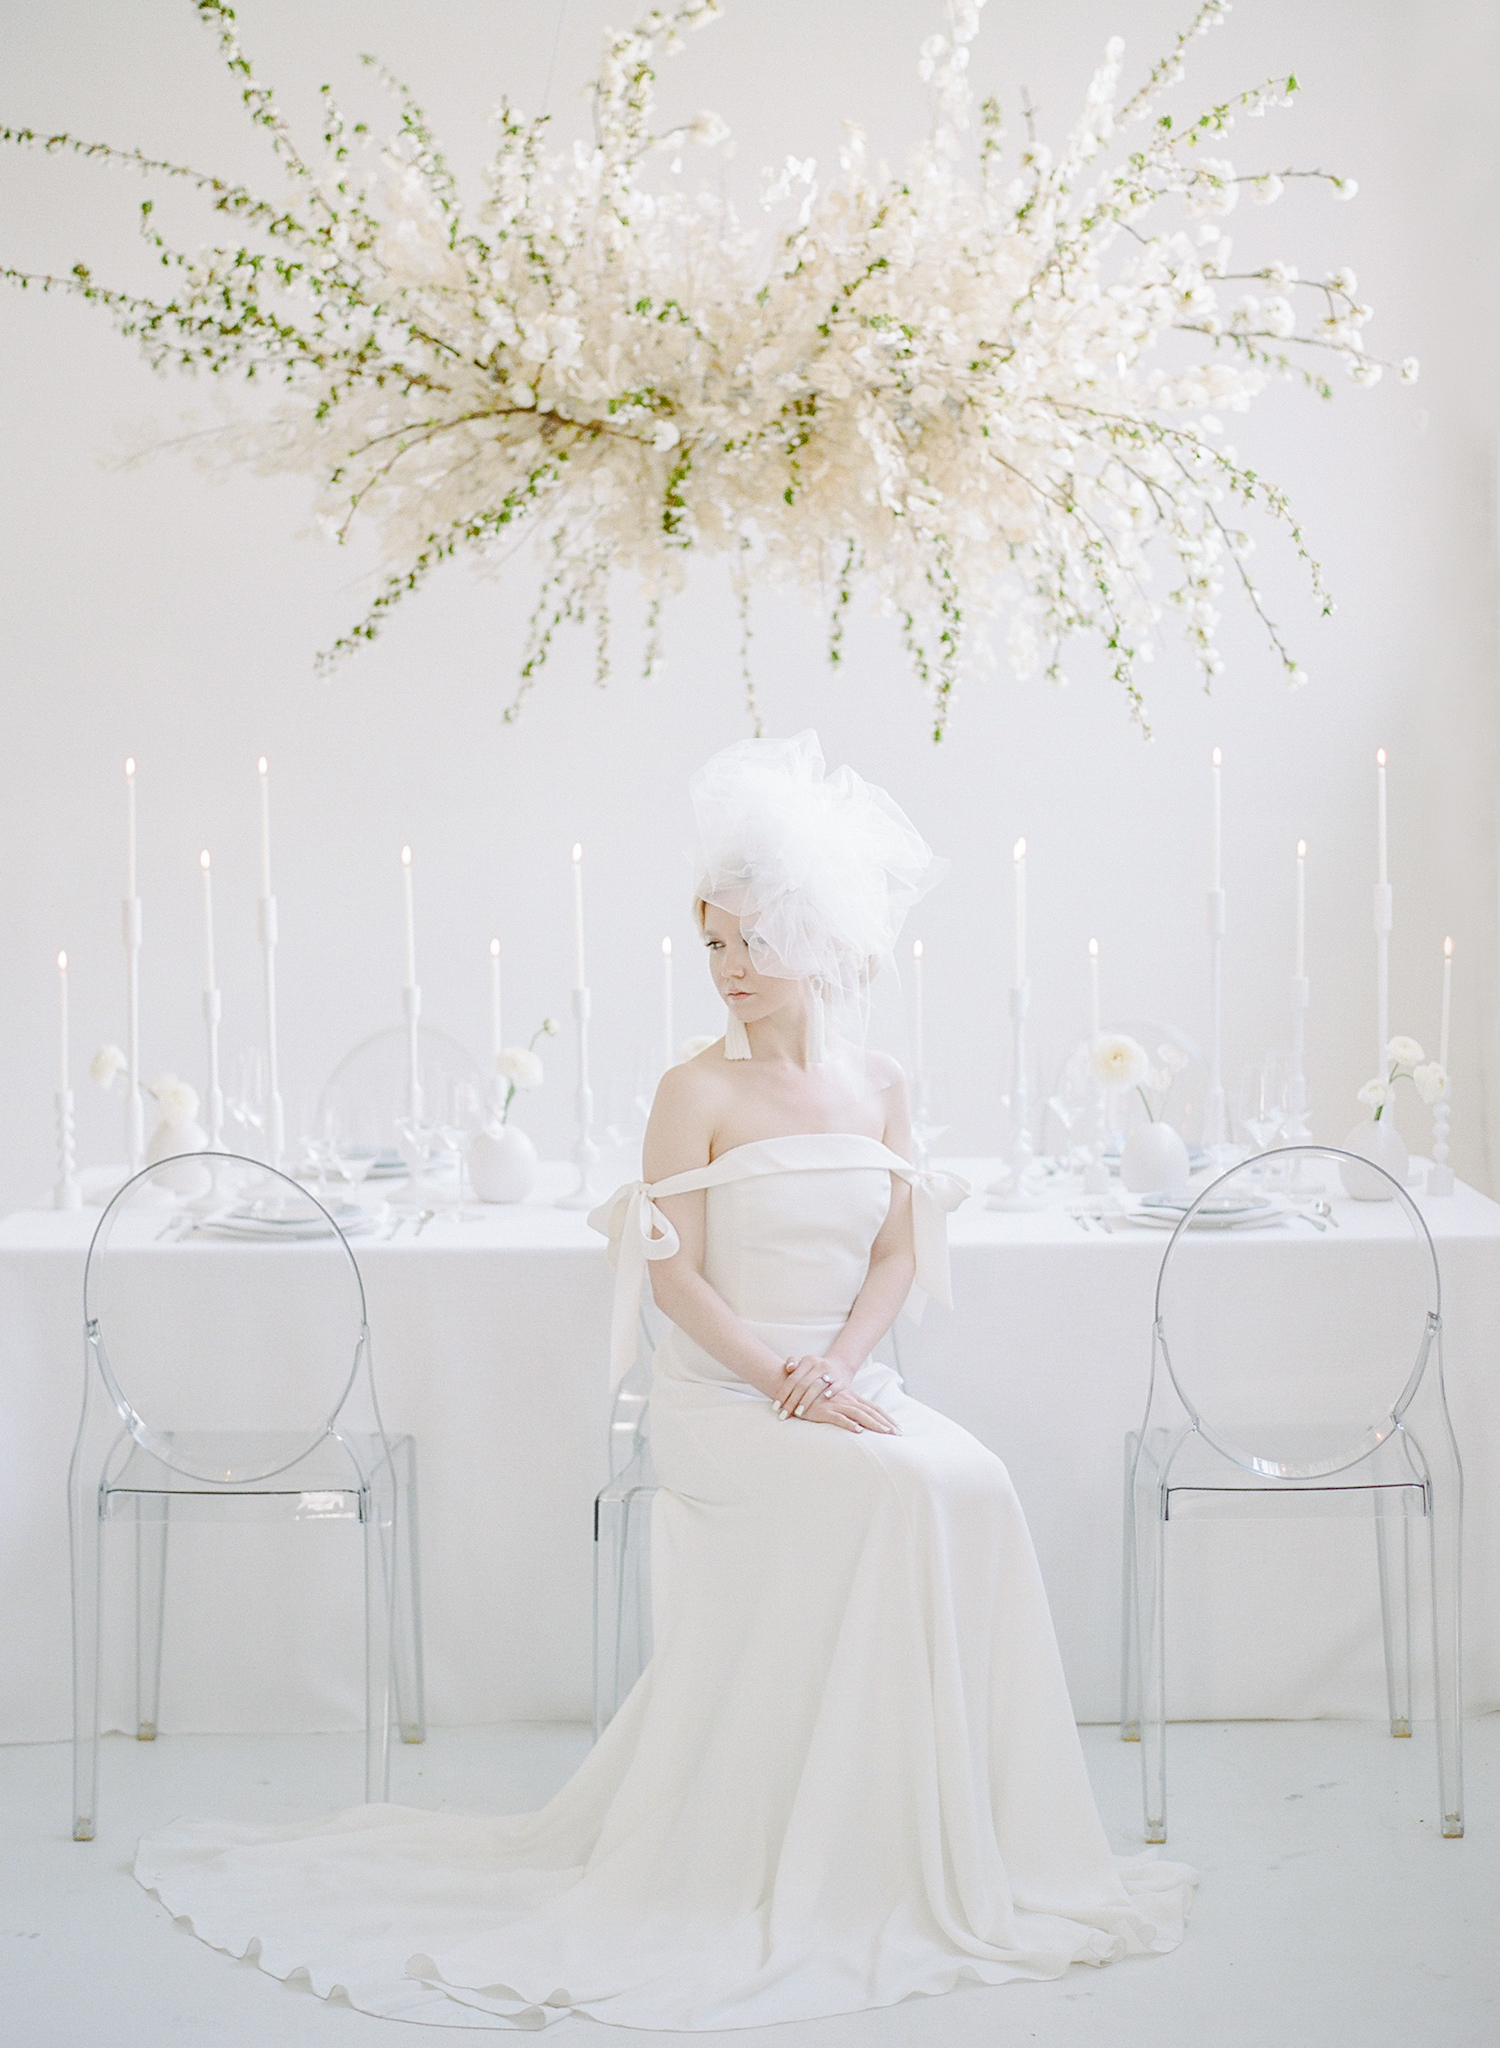 Wild Bloom Floral -Rebecca Yale Photography - Simply by Tamra Nicole - The KNOT - Editorial - Defining Details - White Wedding 20.jpeg